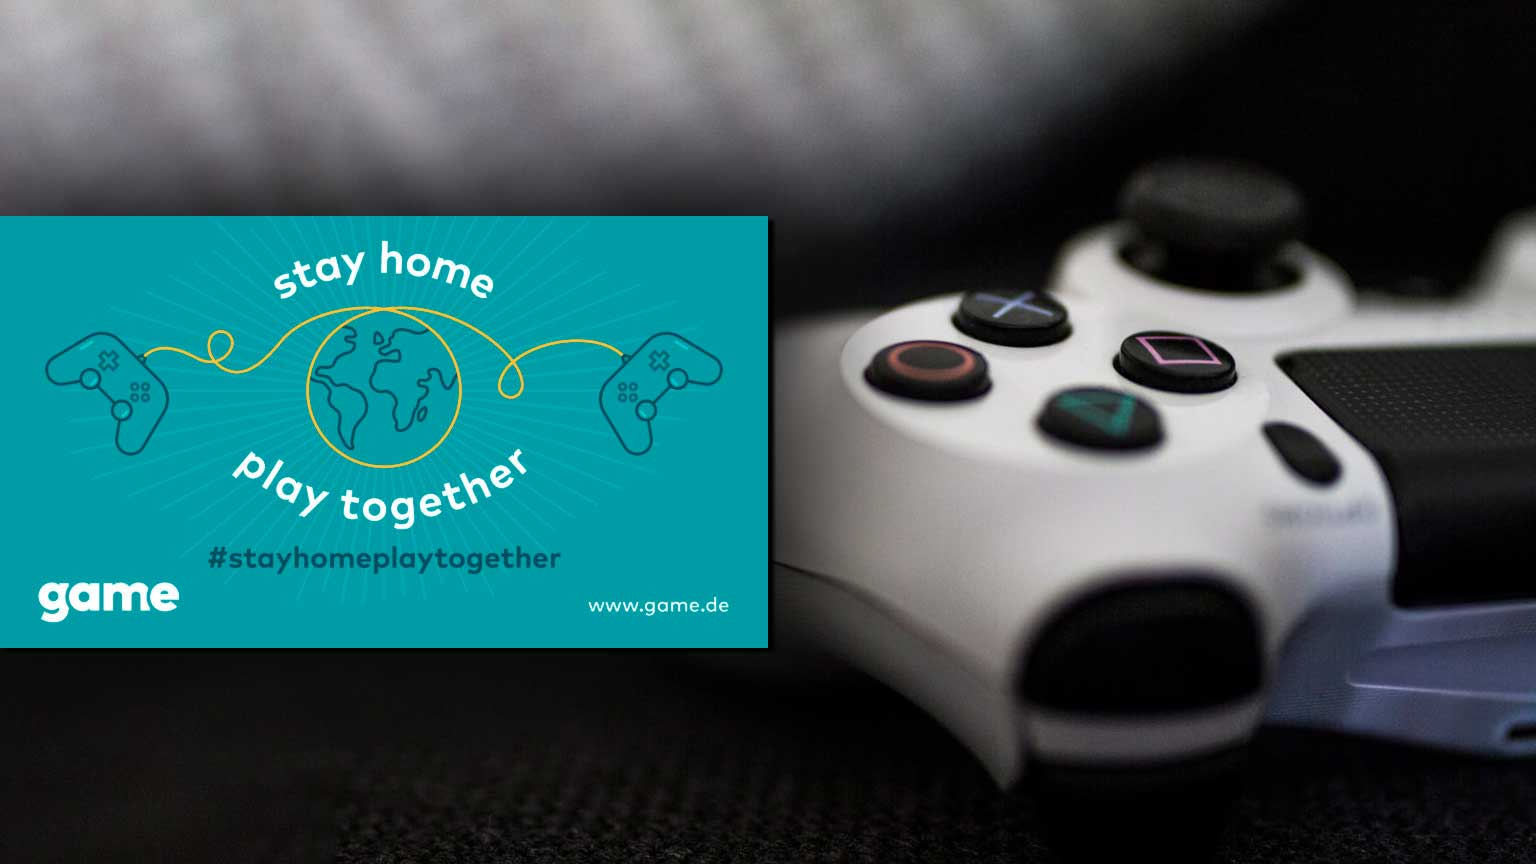 200324 game Stay home play together Facebook Twitter 768x432 babt